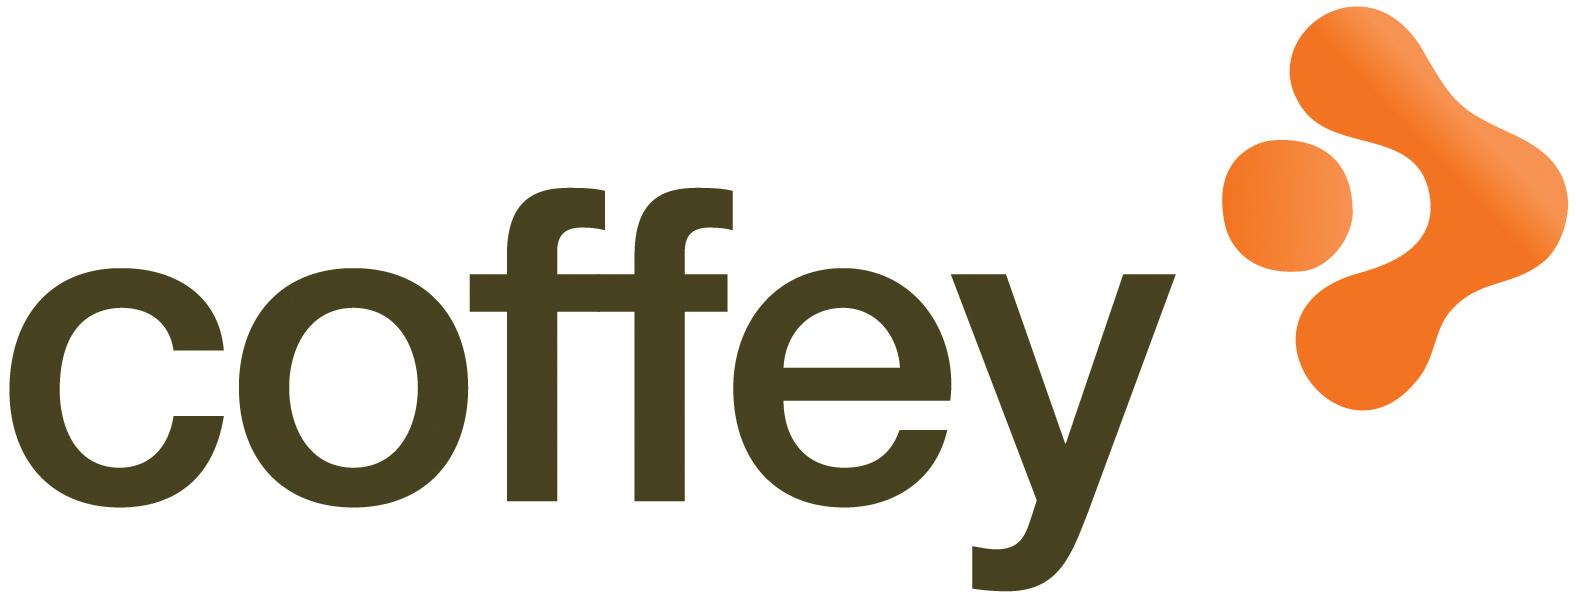 Coffey Geotechnics - Specialist in Managing the Earth